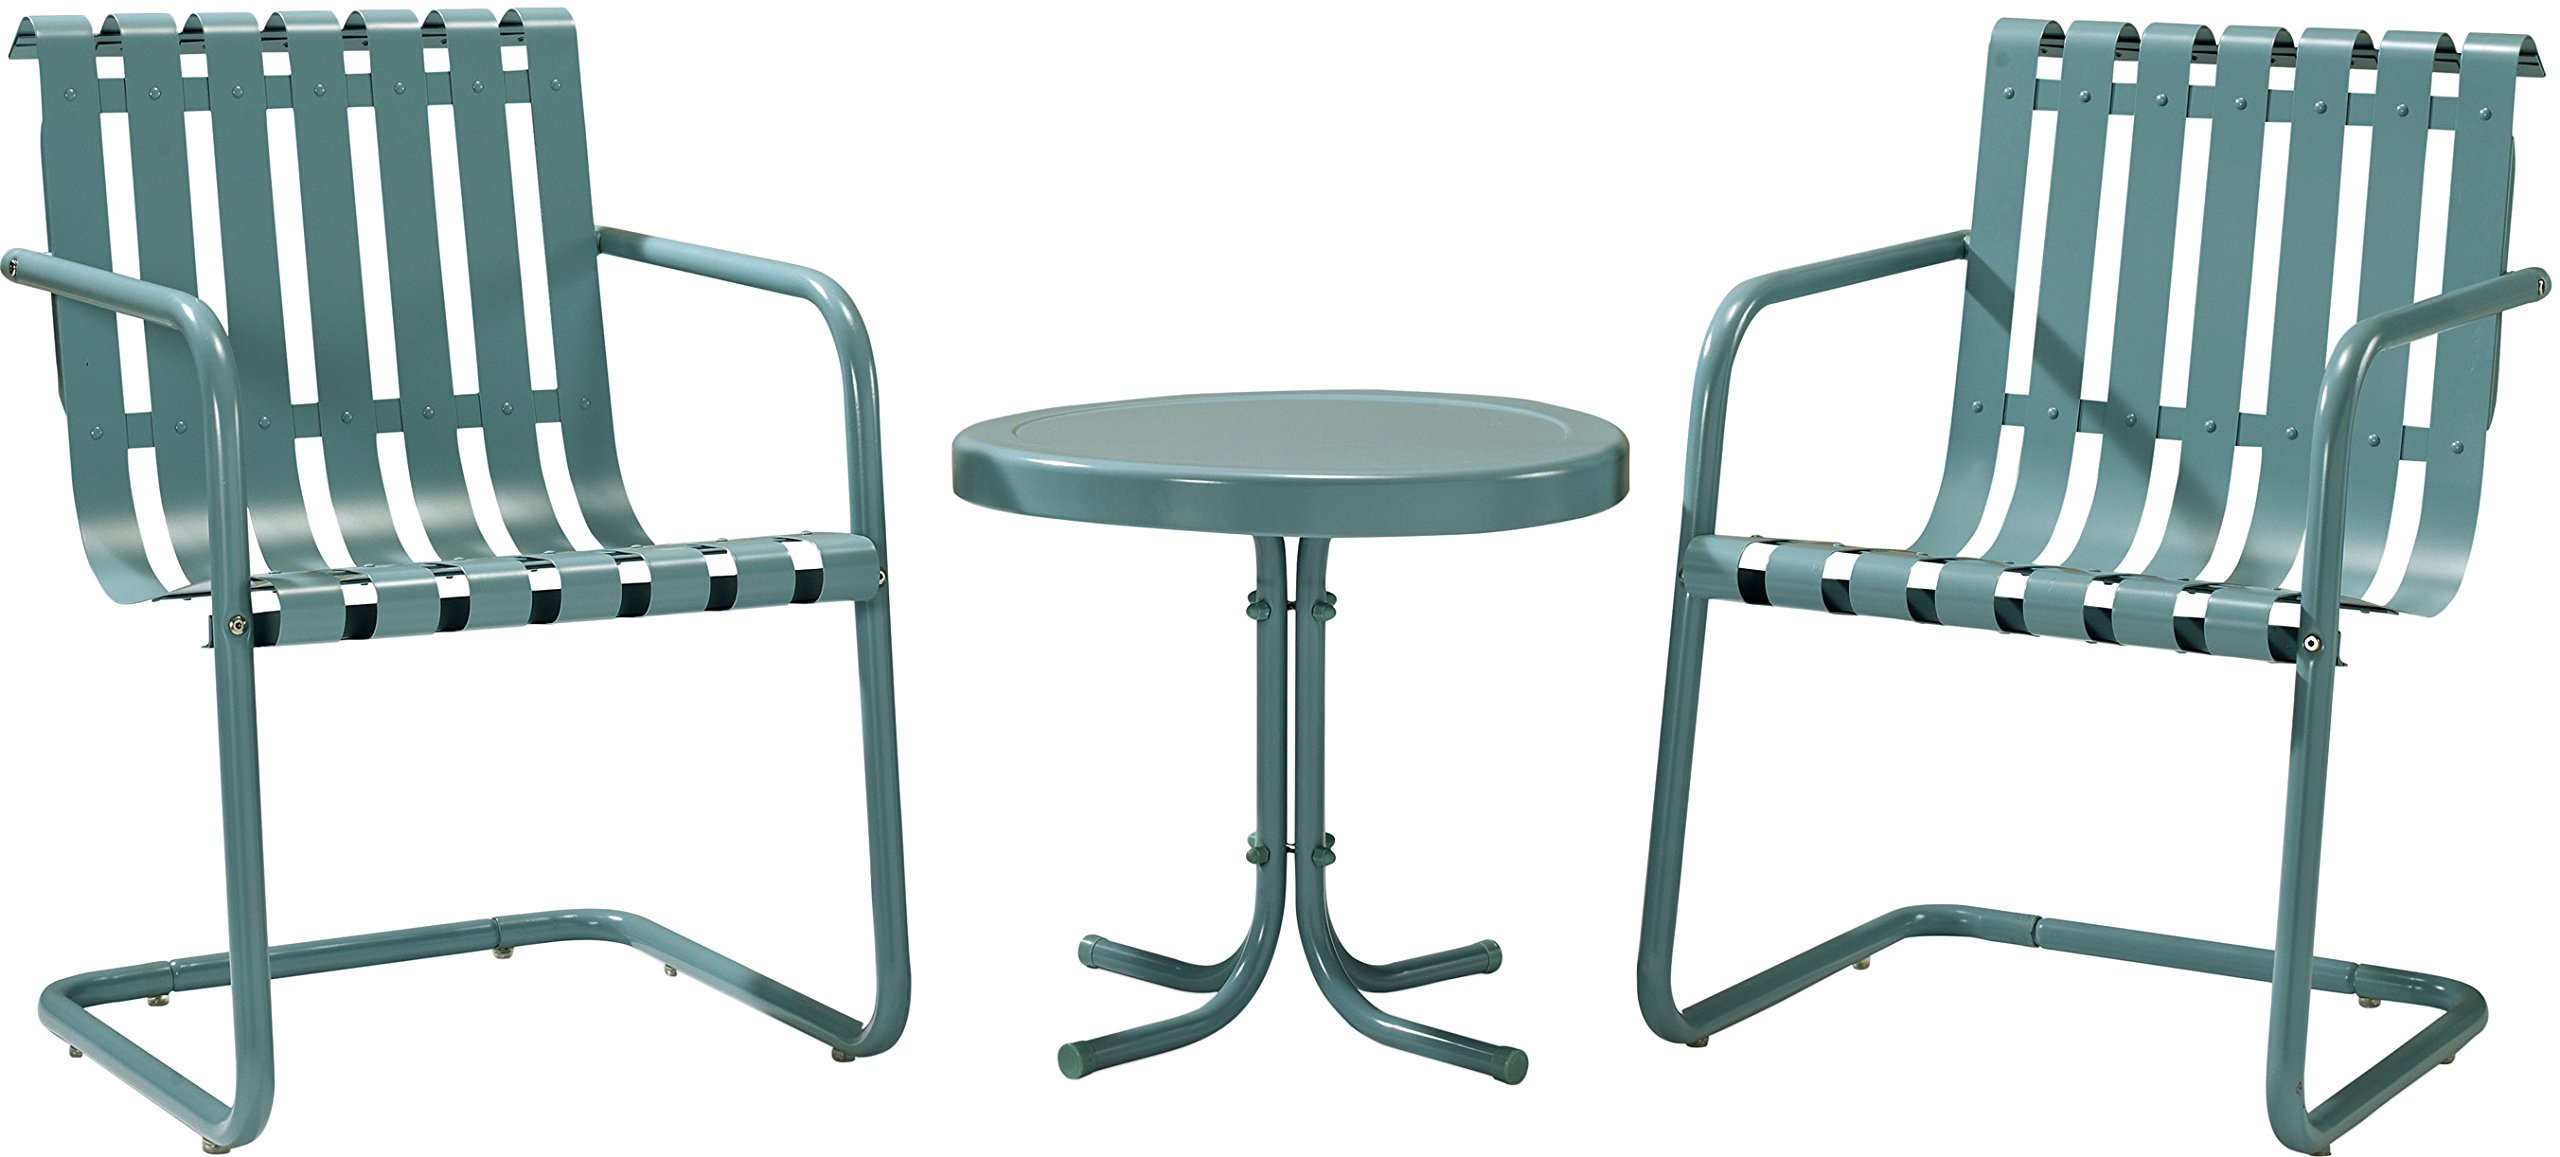 Crosley Furniture Gracie 3-Piece Retro Metal Outdoor Conversation Set with Side Table and 2 Chairs - Caribbean Blue by Crosley Furniture